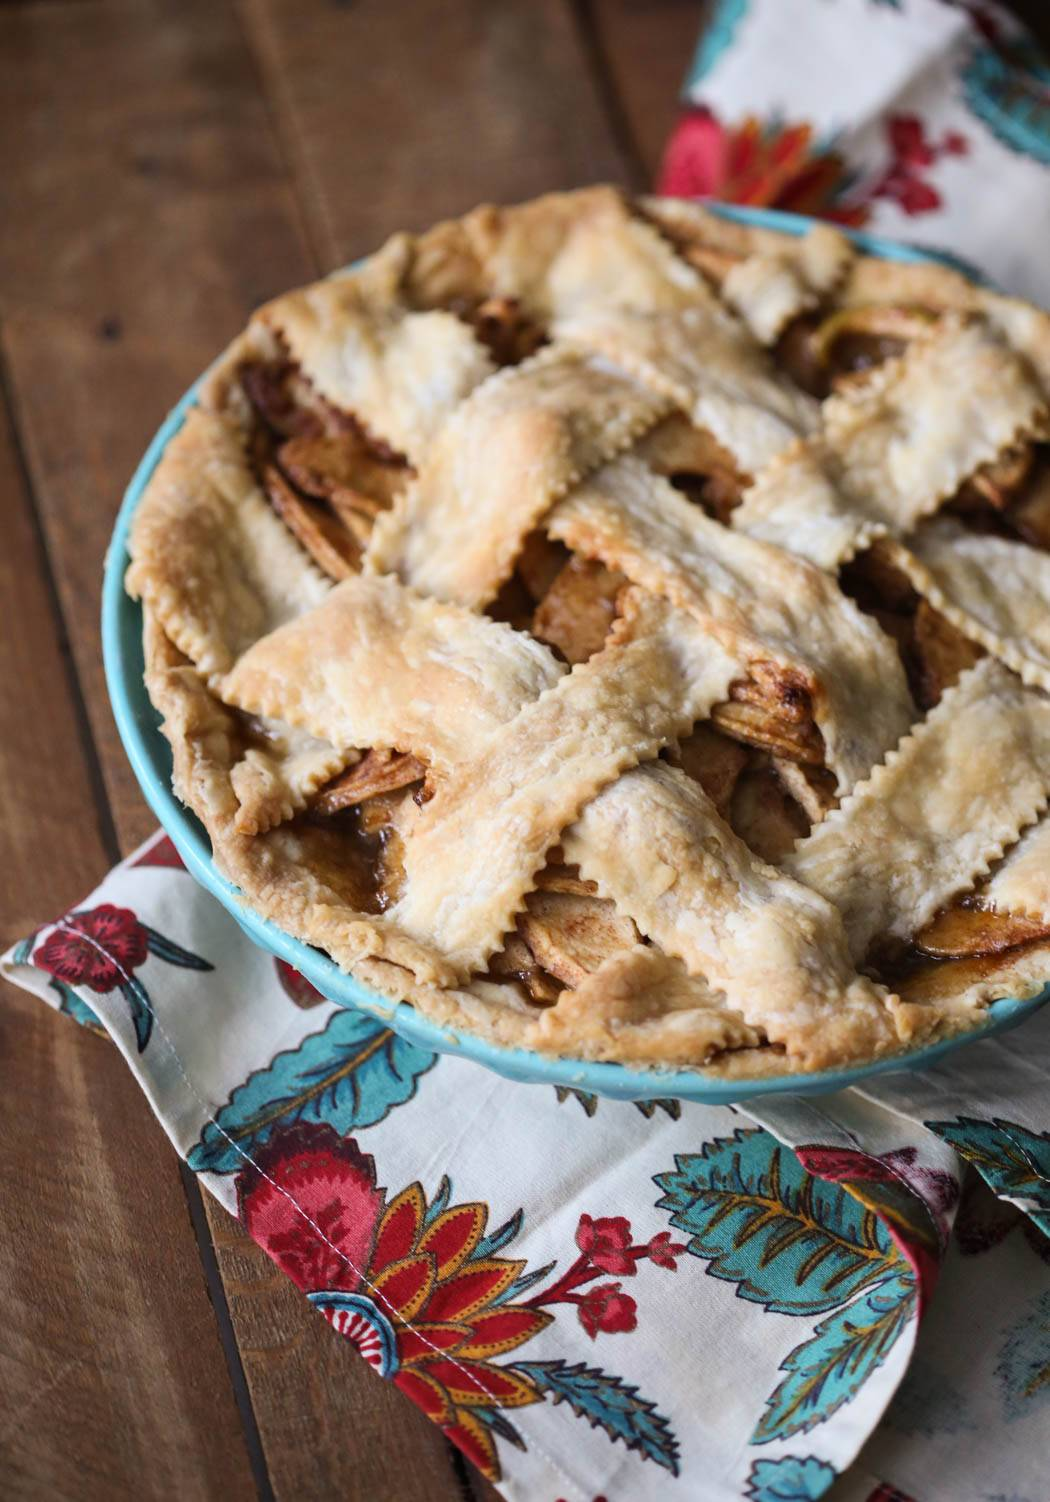 Baked Apple pie from Our Best Bites